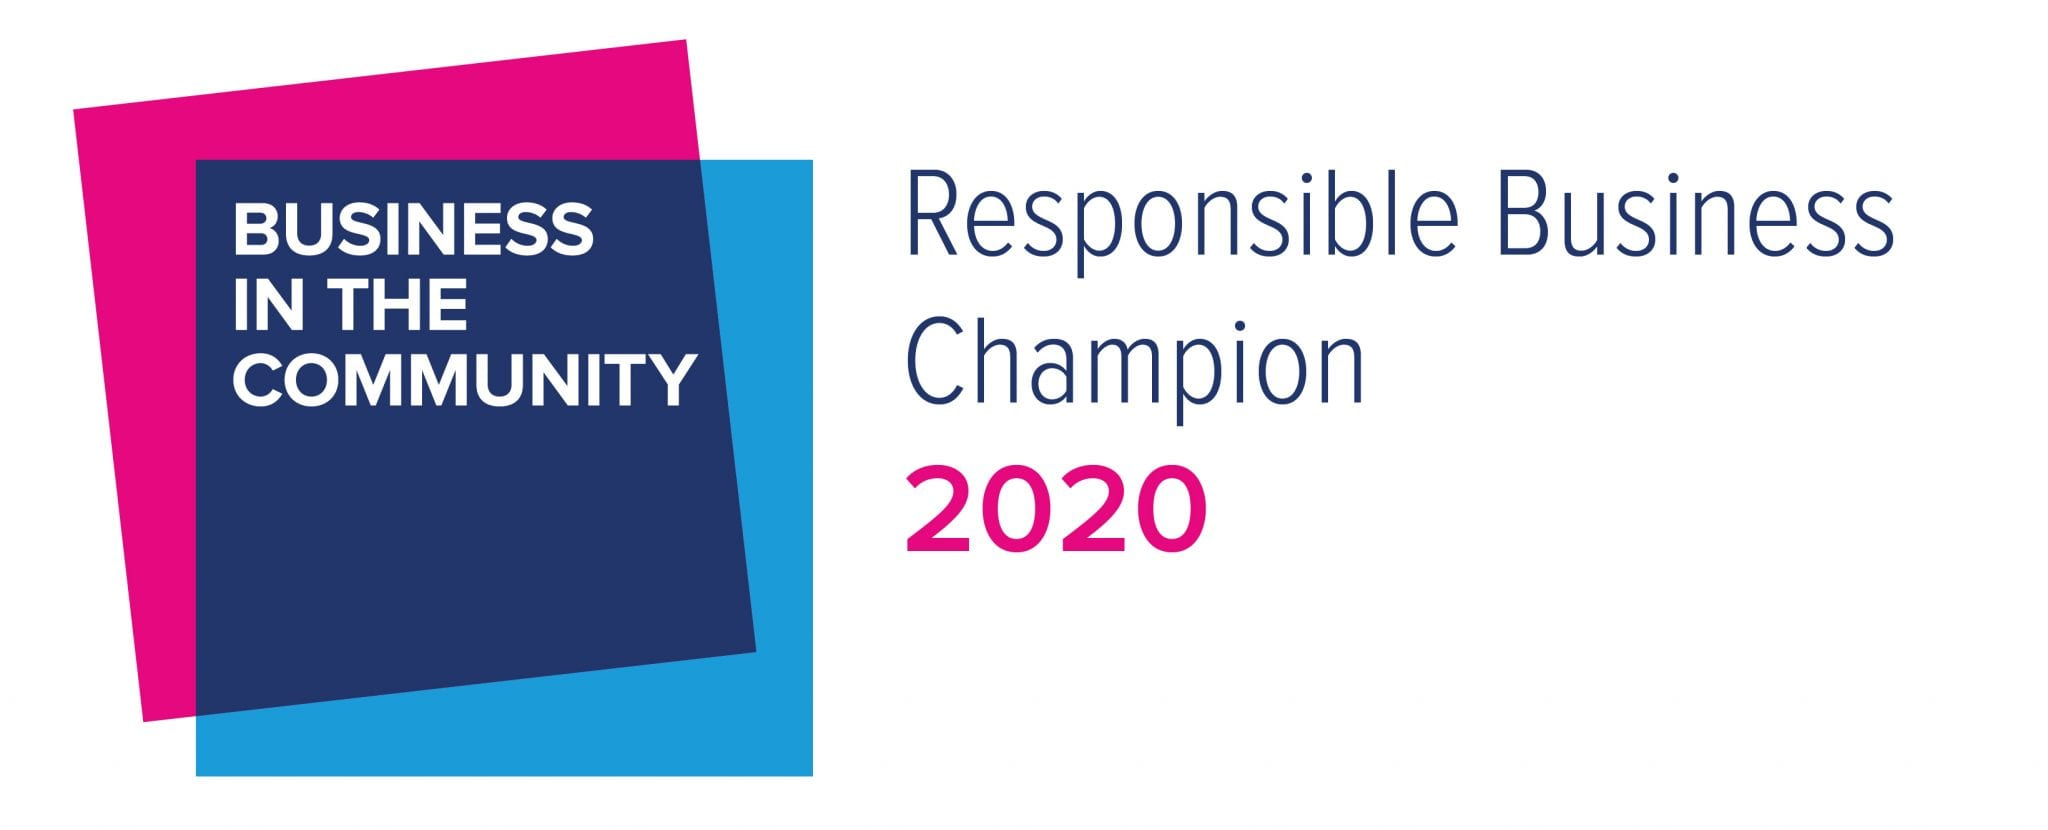 Bitc Responsible Business Champions 2020 The Connected Places Award Building Construction Engineering Property Development Heron Bros Ltd